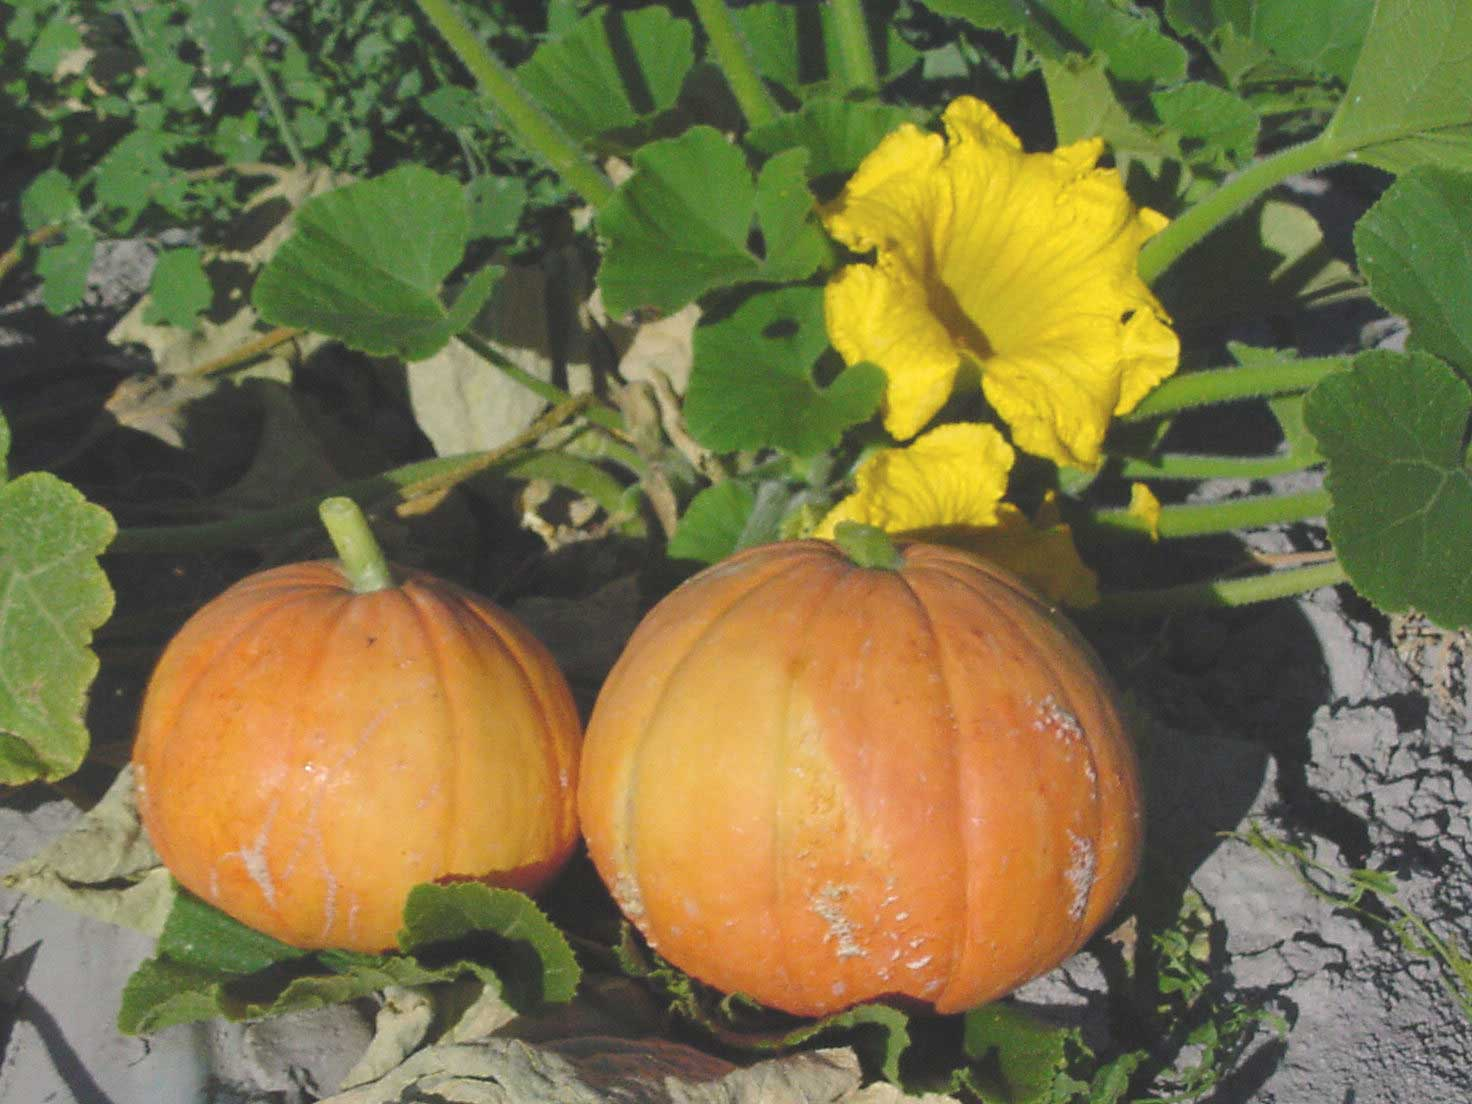 hight resolution of the squashes including pumpkins and gourds are a crop native to the americas that require a pollinator squashes are big business a half billion dollar